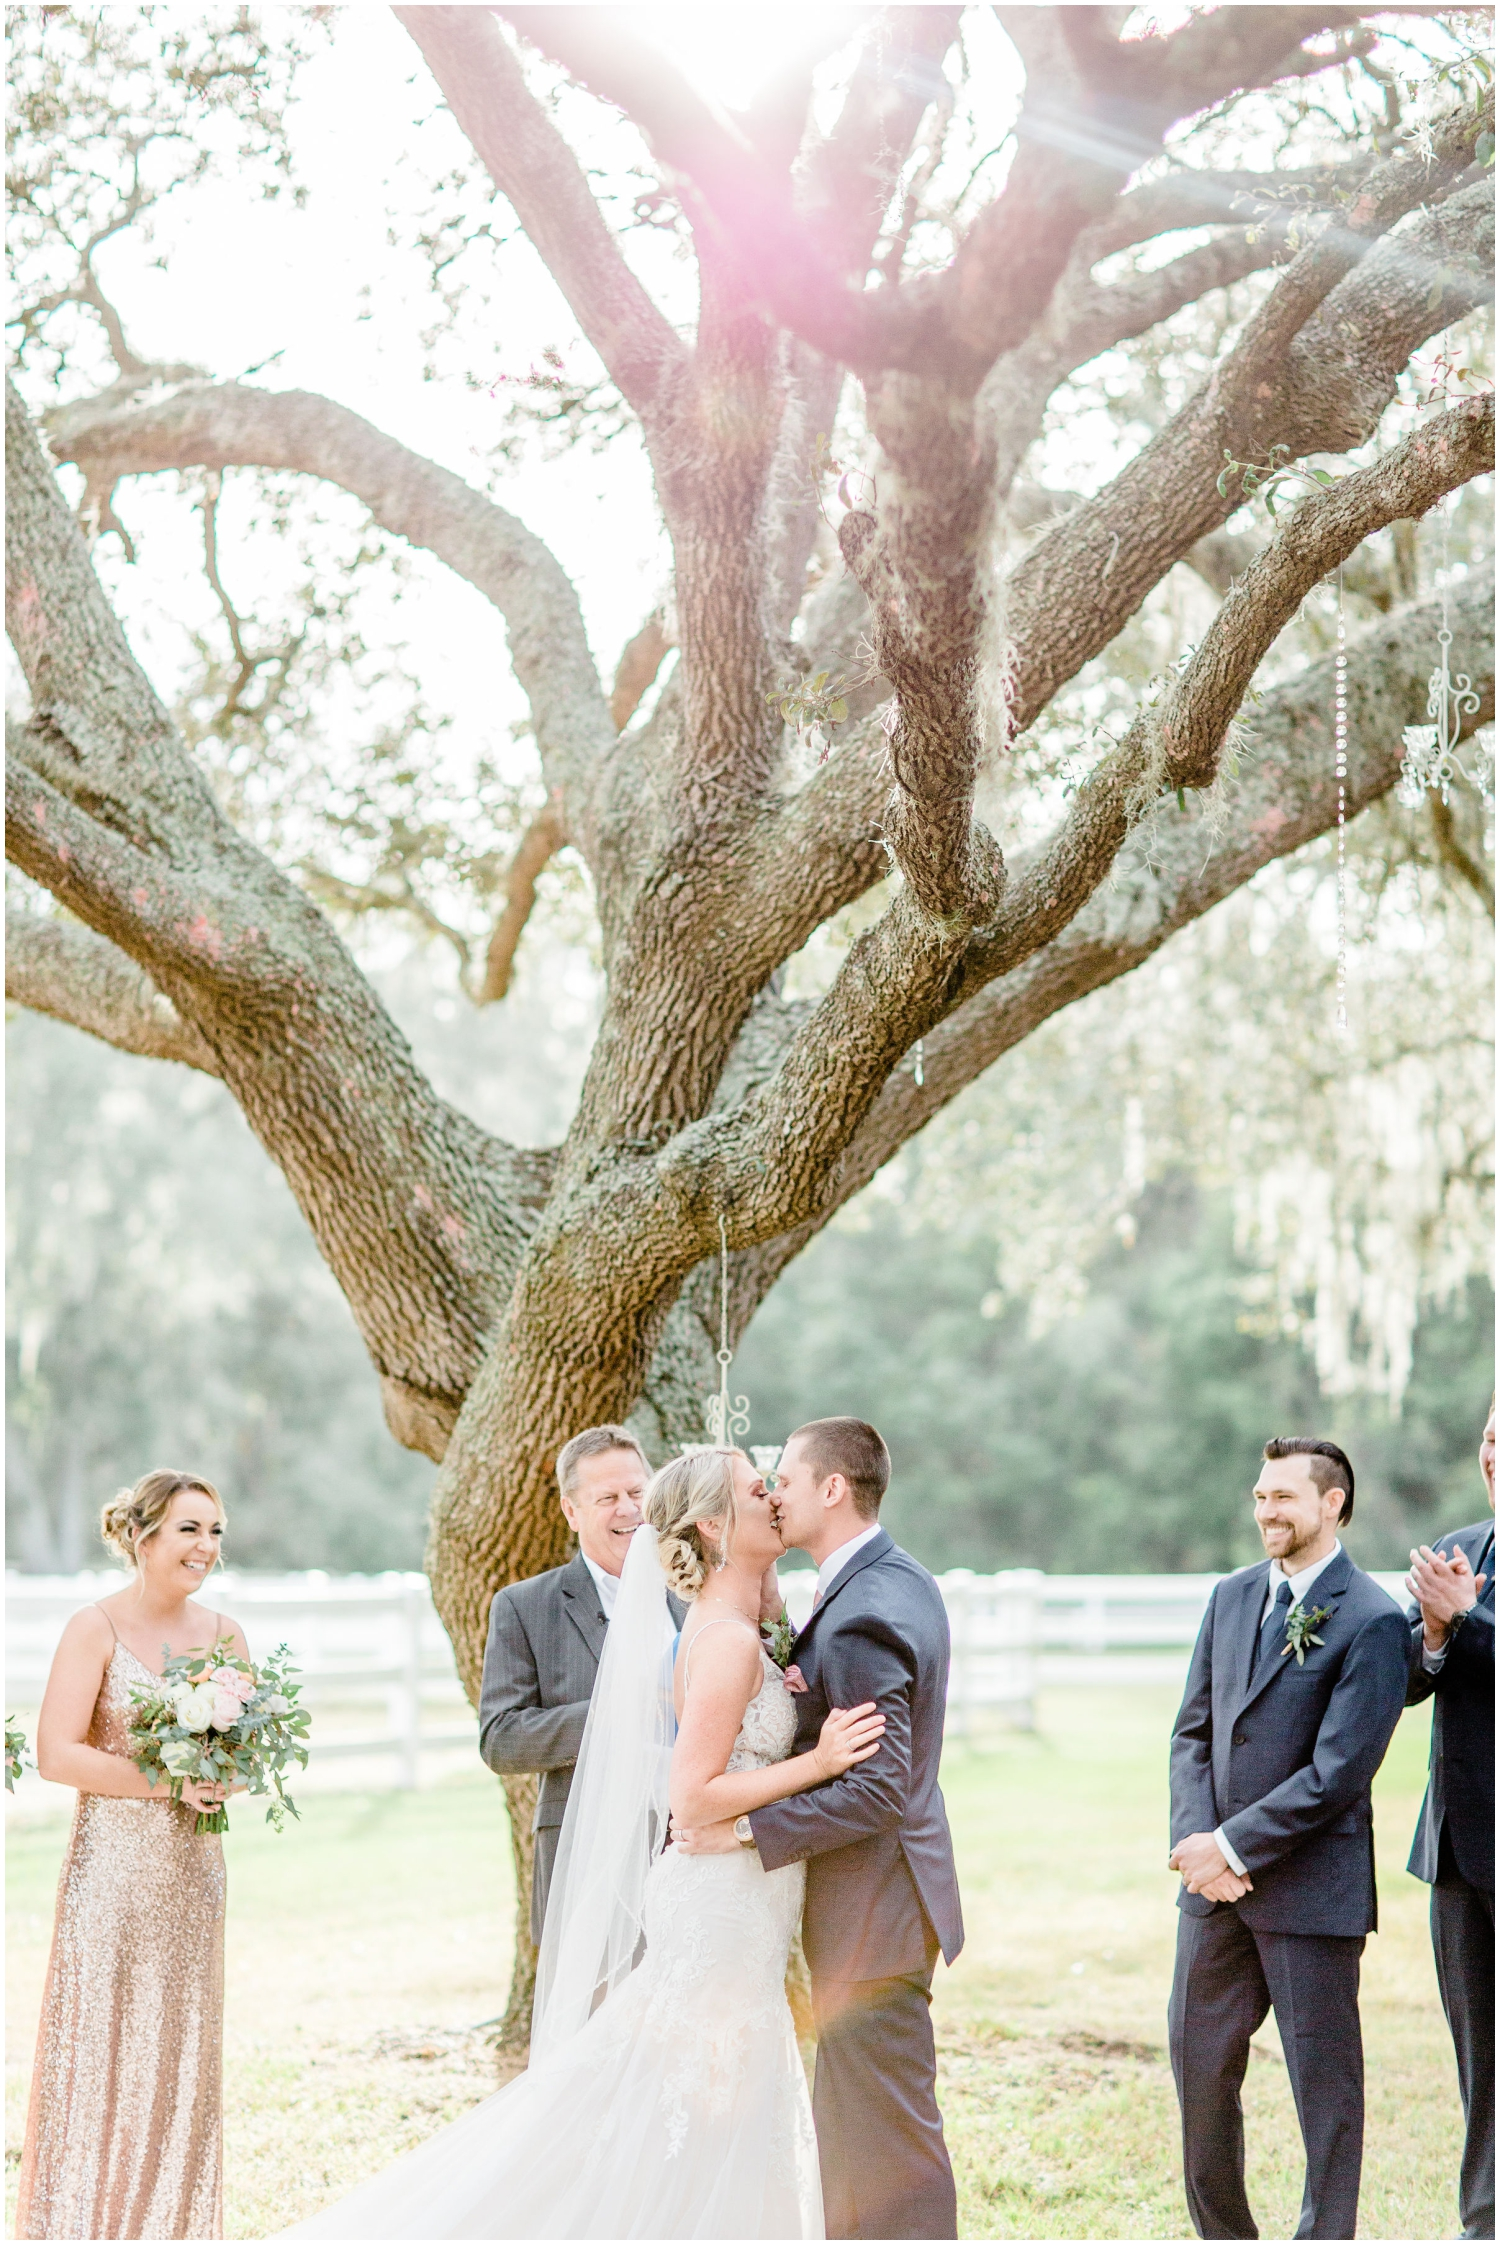 Bride and groom kiss during their outdoor wedding